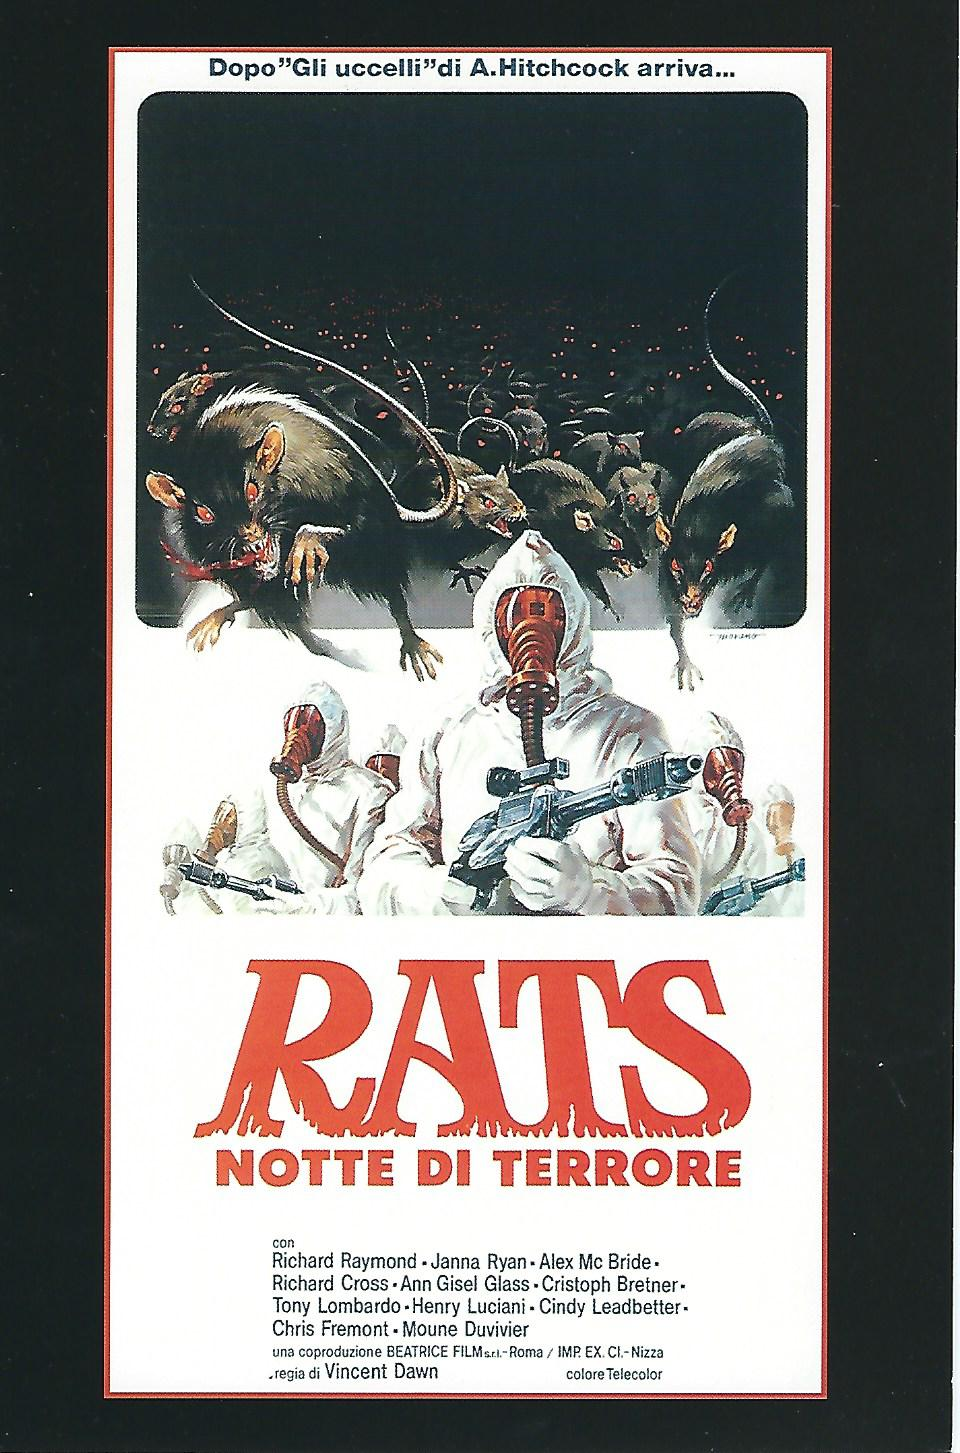 Rats Night of Terror poster